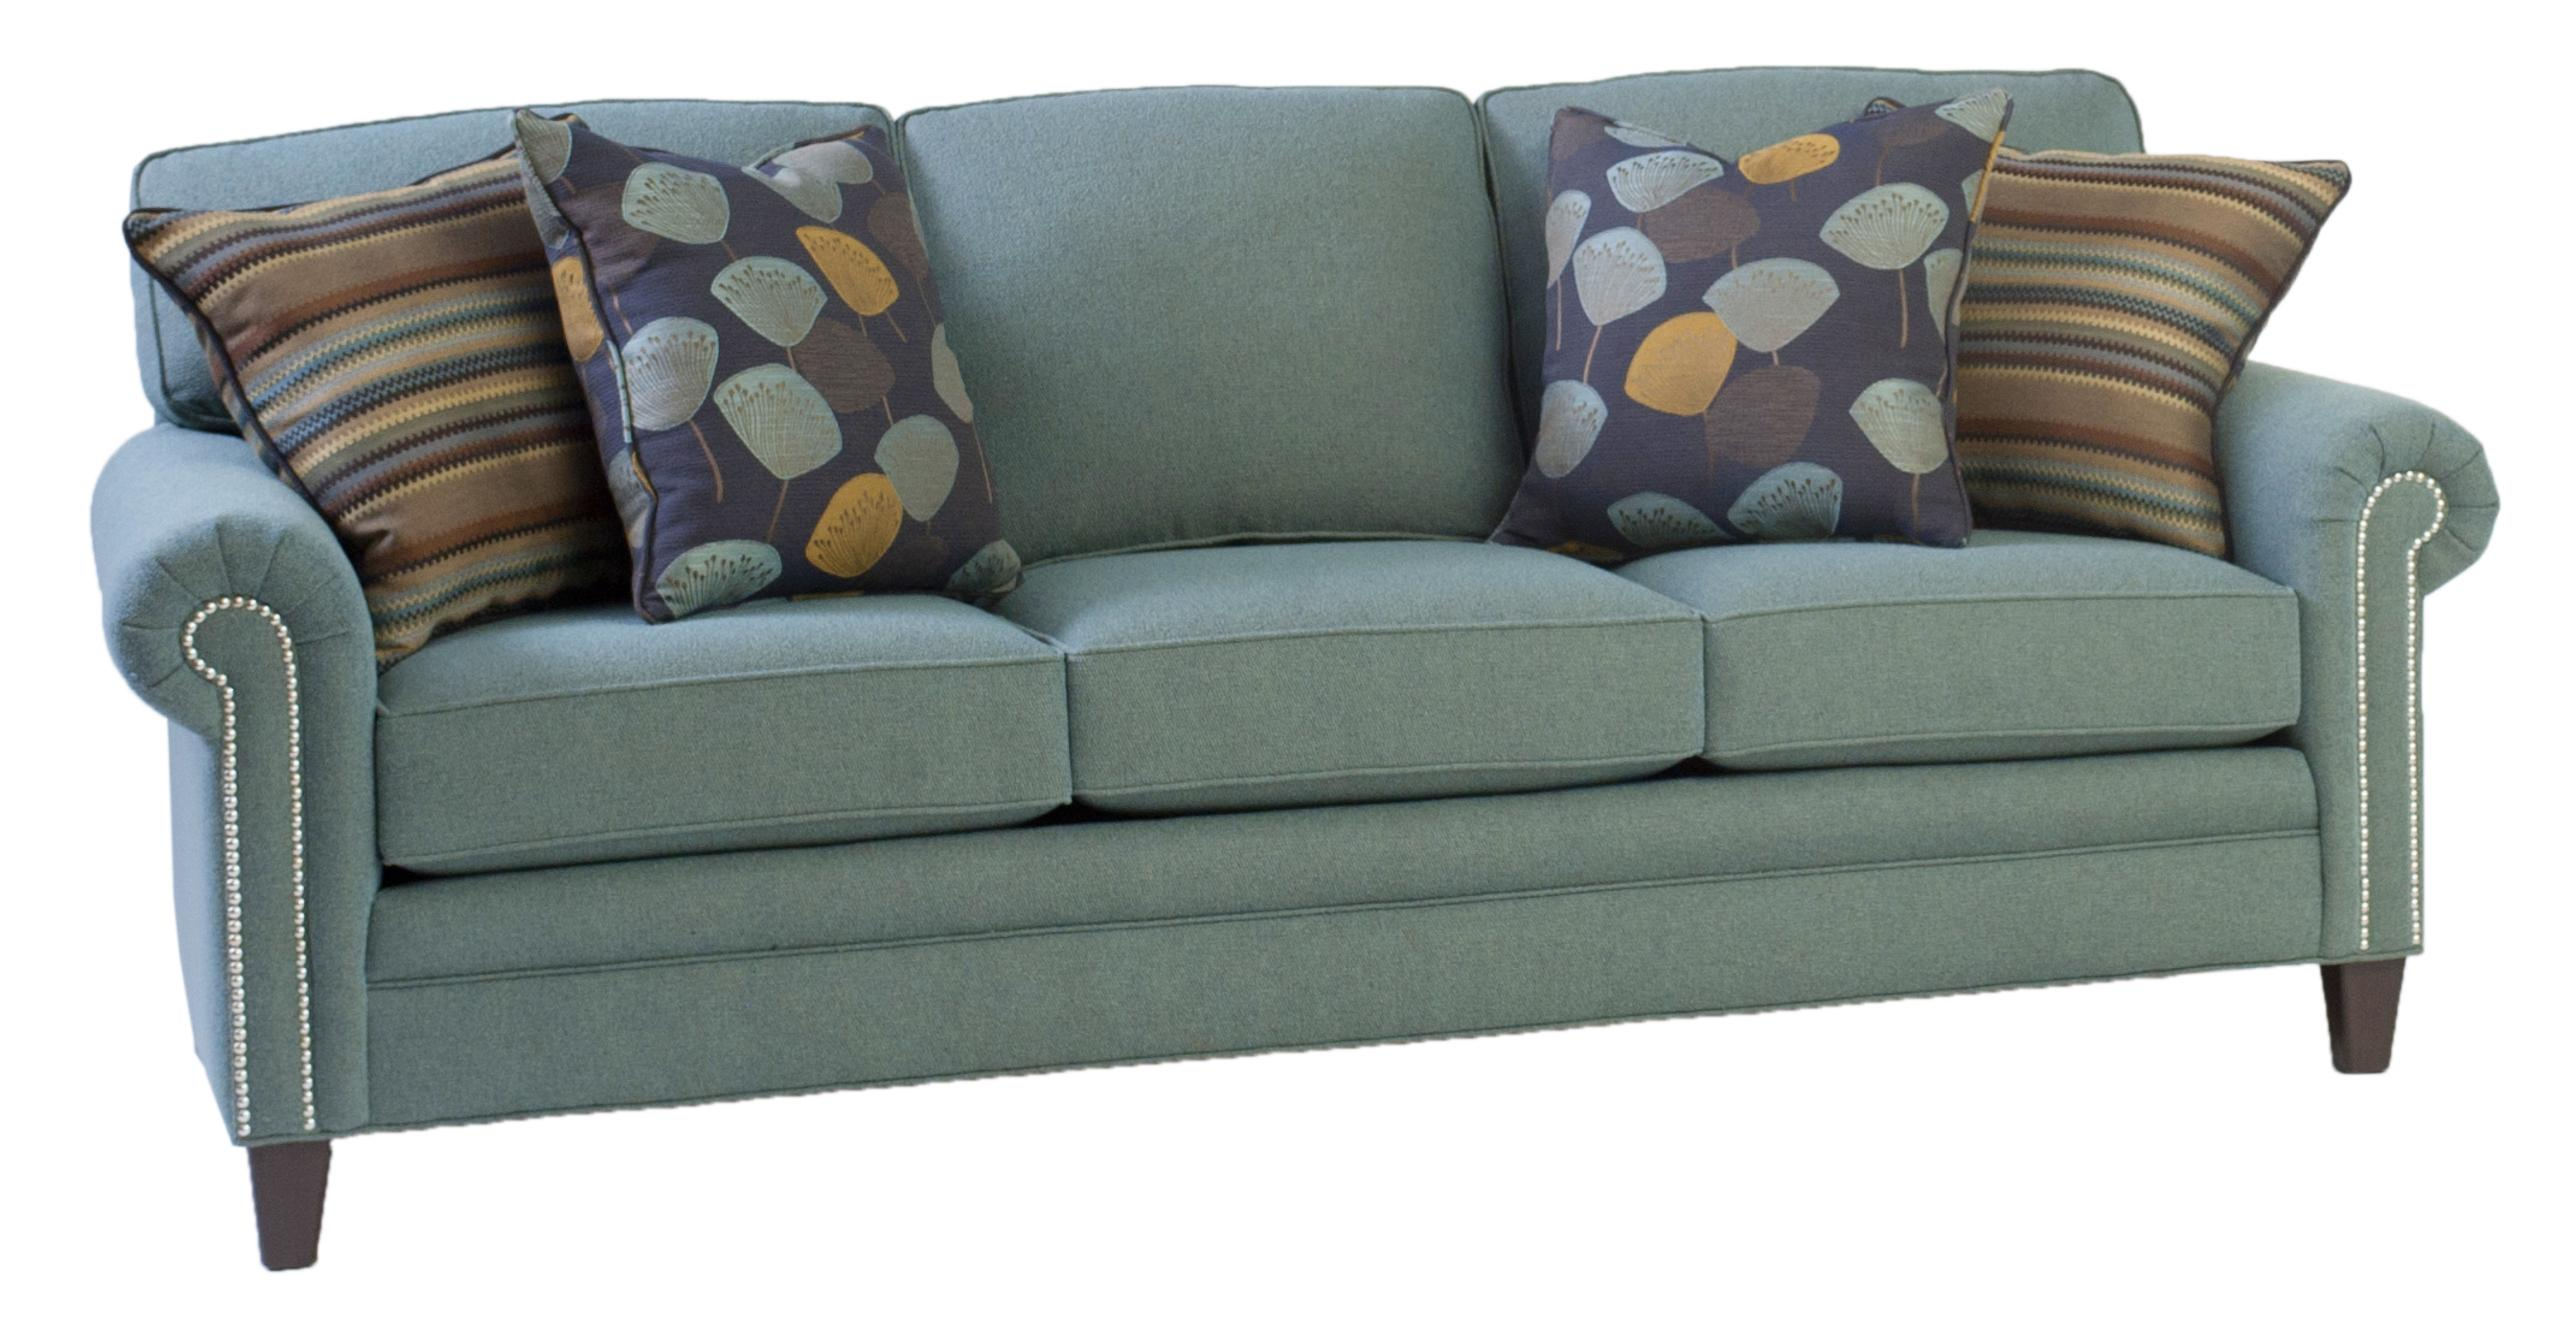 395 Style Group Sofa by Smith Brothers at Westrich Furniture & Appliances